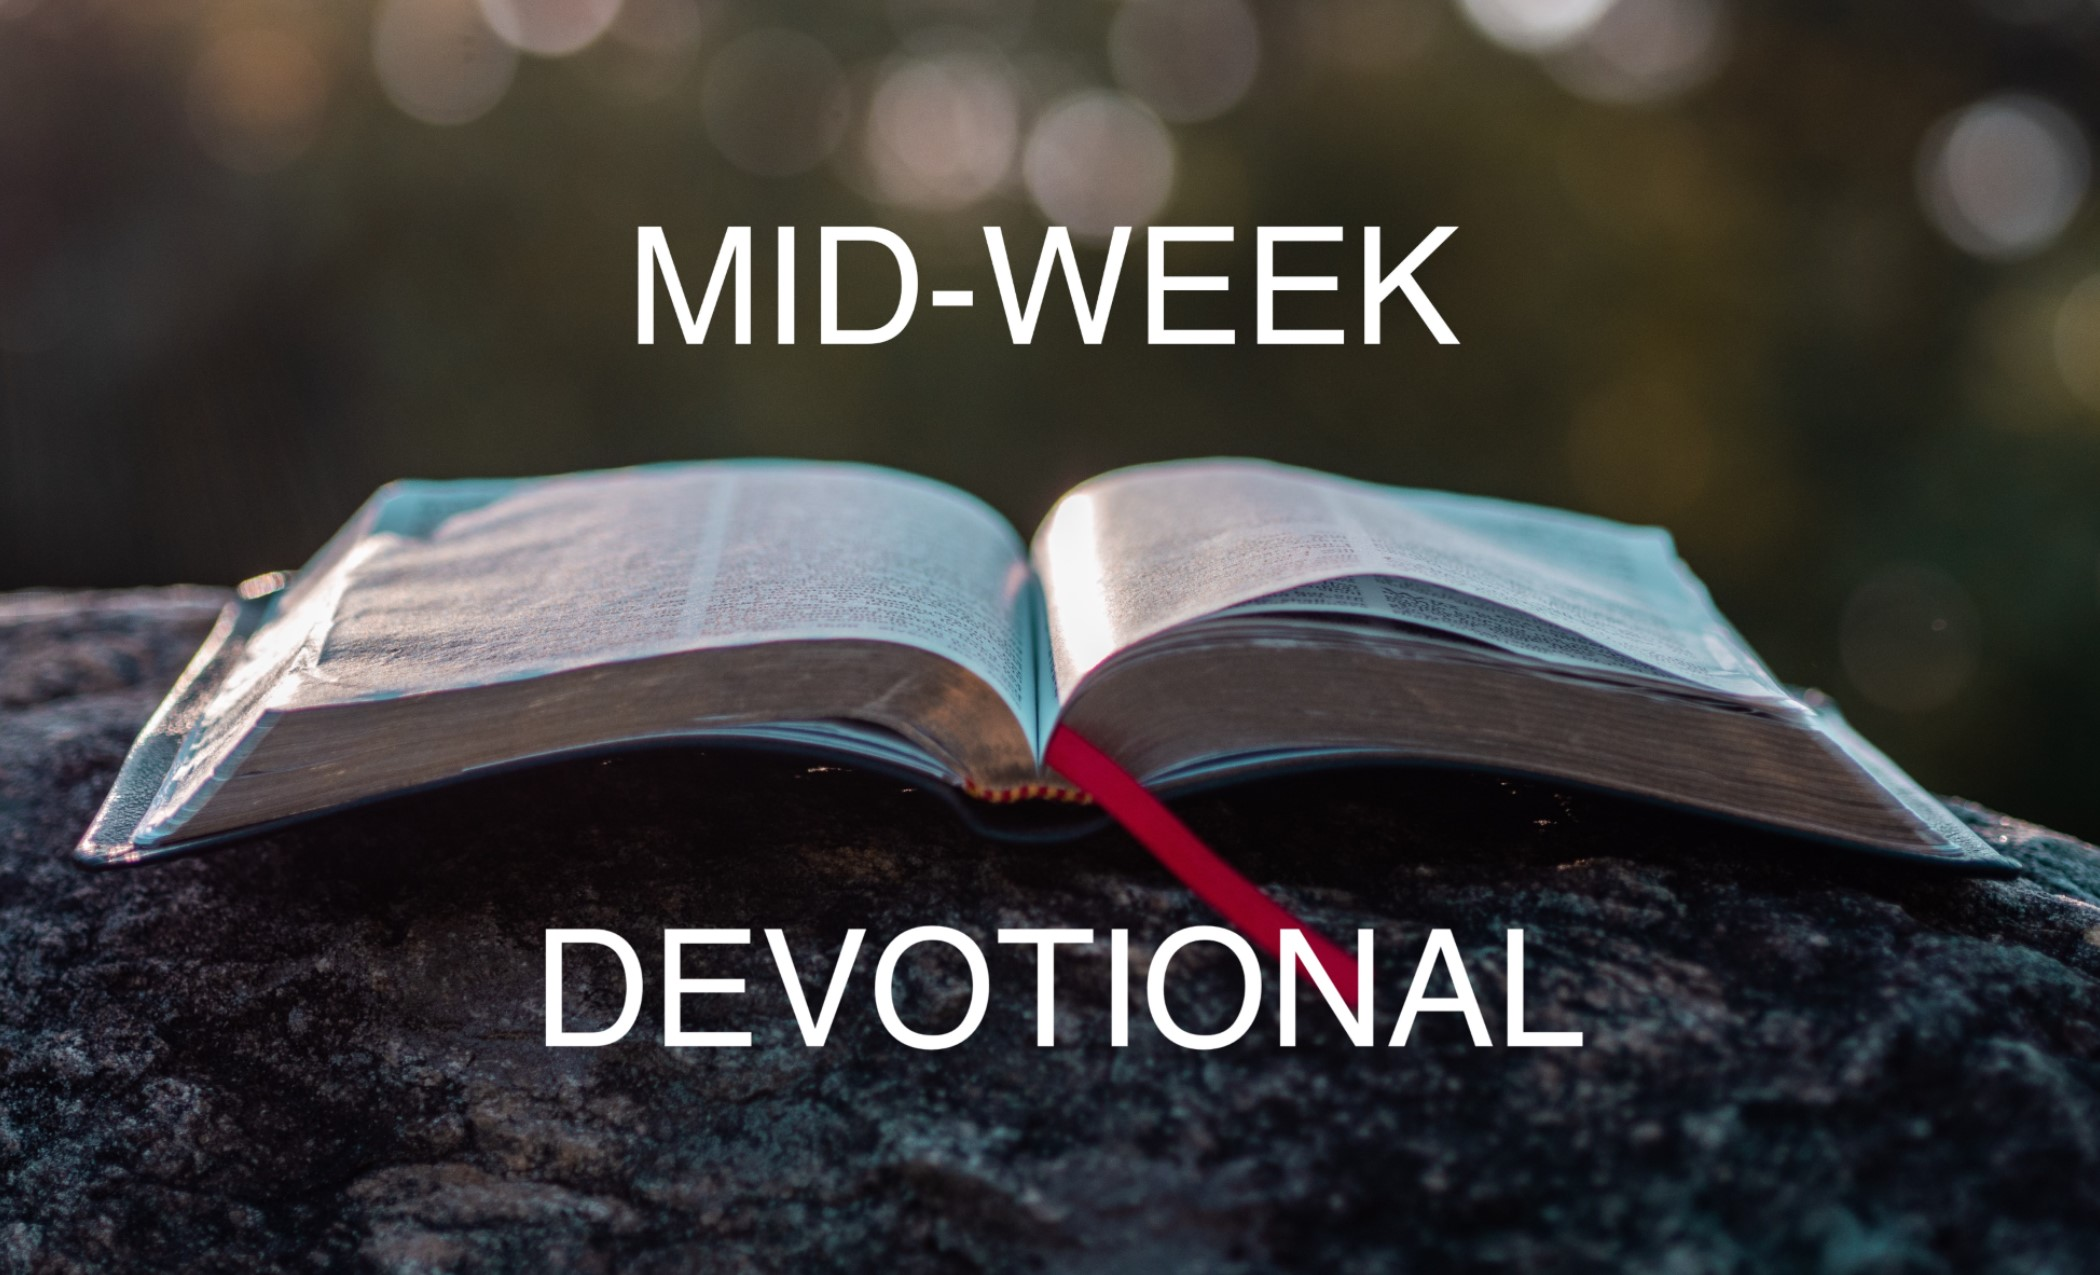 Mid-Week Devotional Image Resized